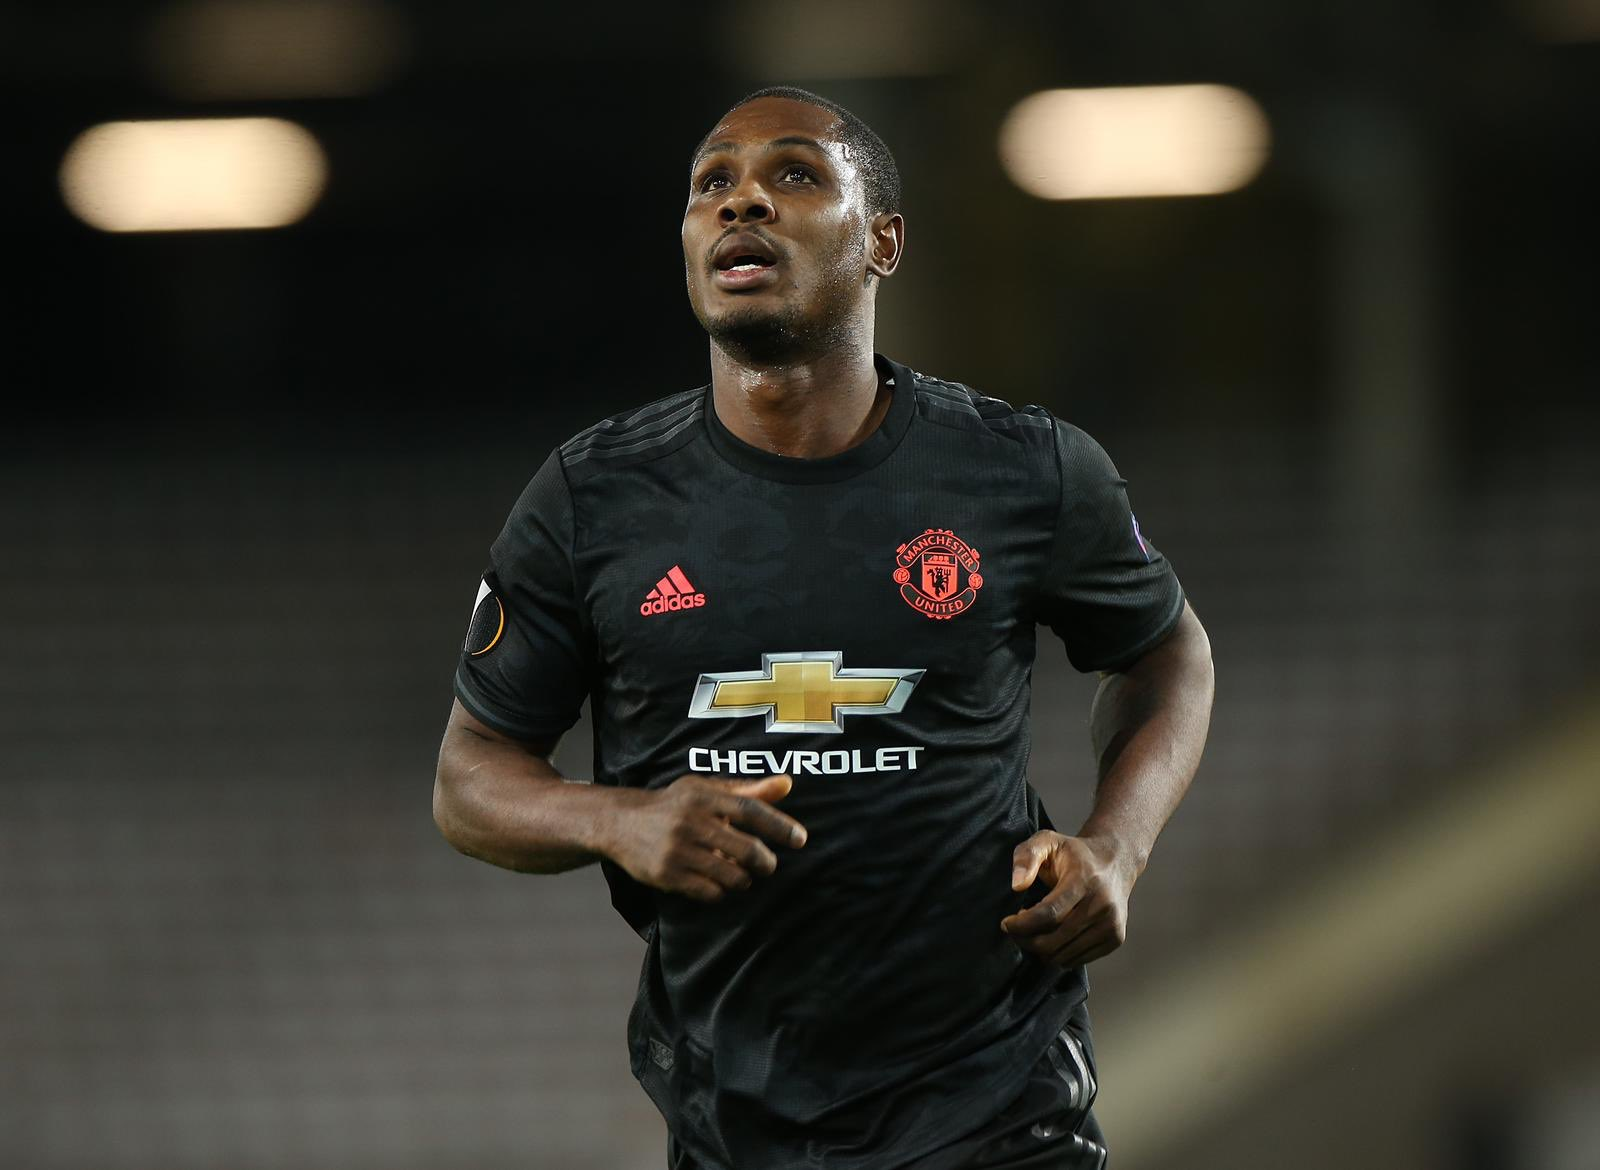 Man United Move For Ighalo Replacement in Limbo Due To Coronavirus Pandemic